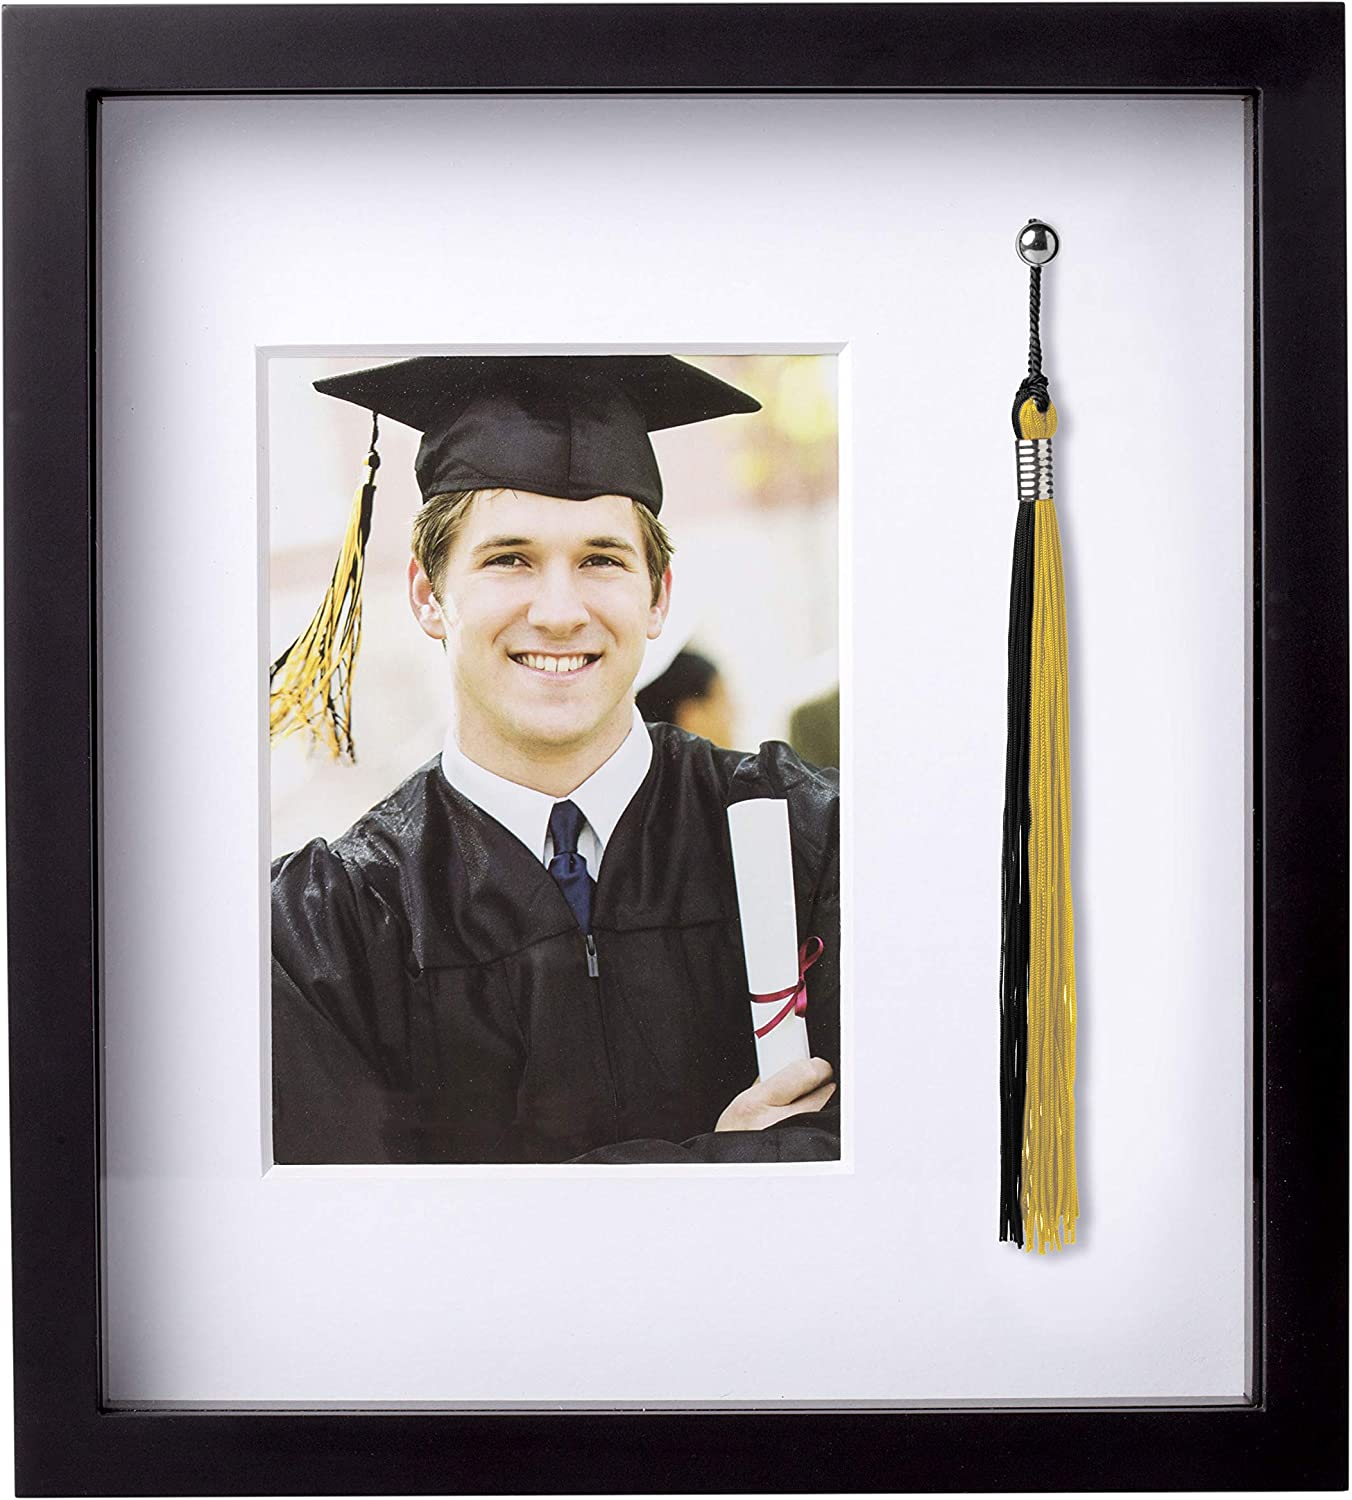 1 year warranty Super special price Pearhead Classic Graduation Diploma Frame Highschool College and